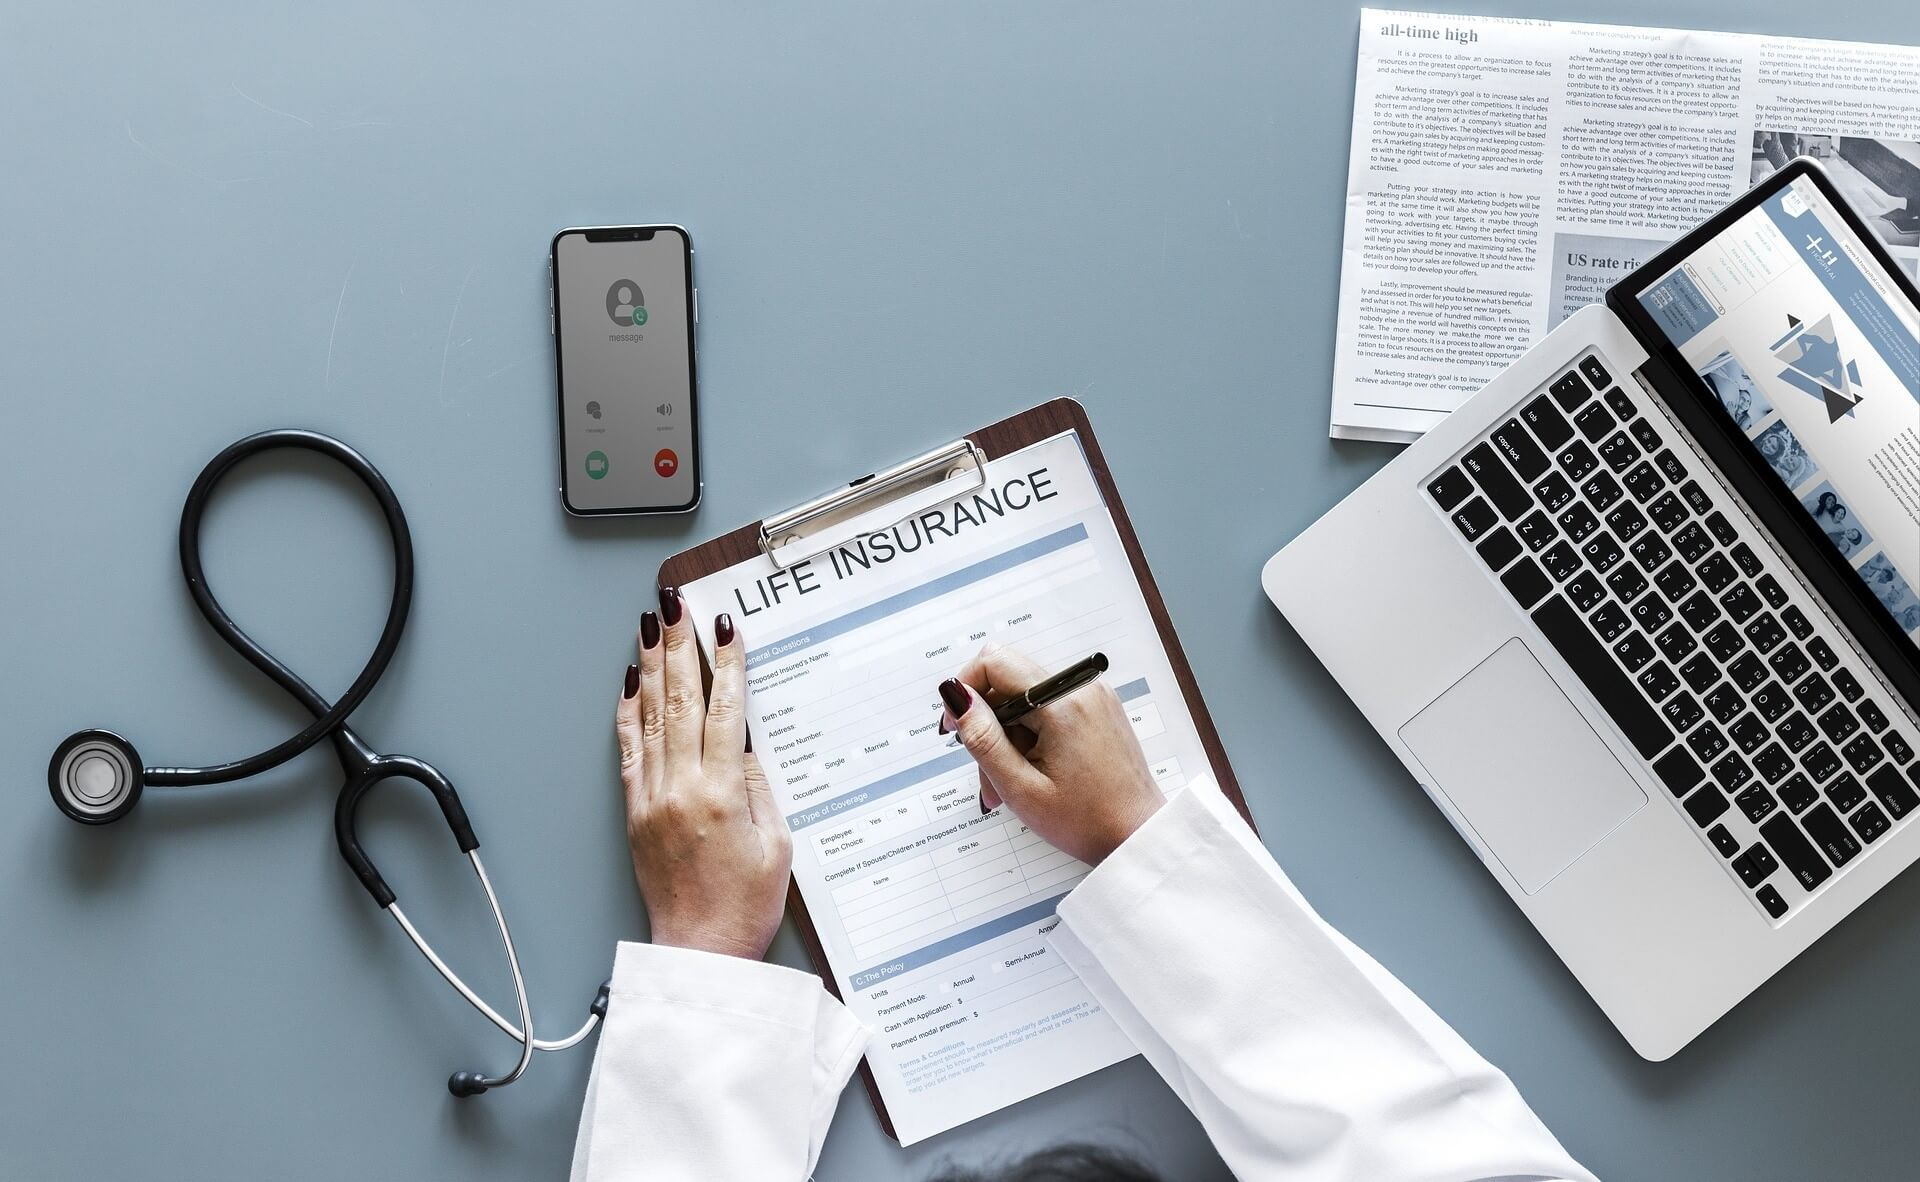 Why Healthcare Companies Should Better Protect Medical Data